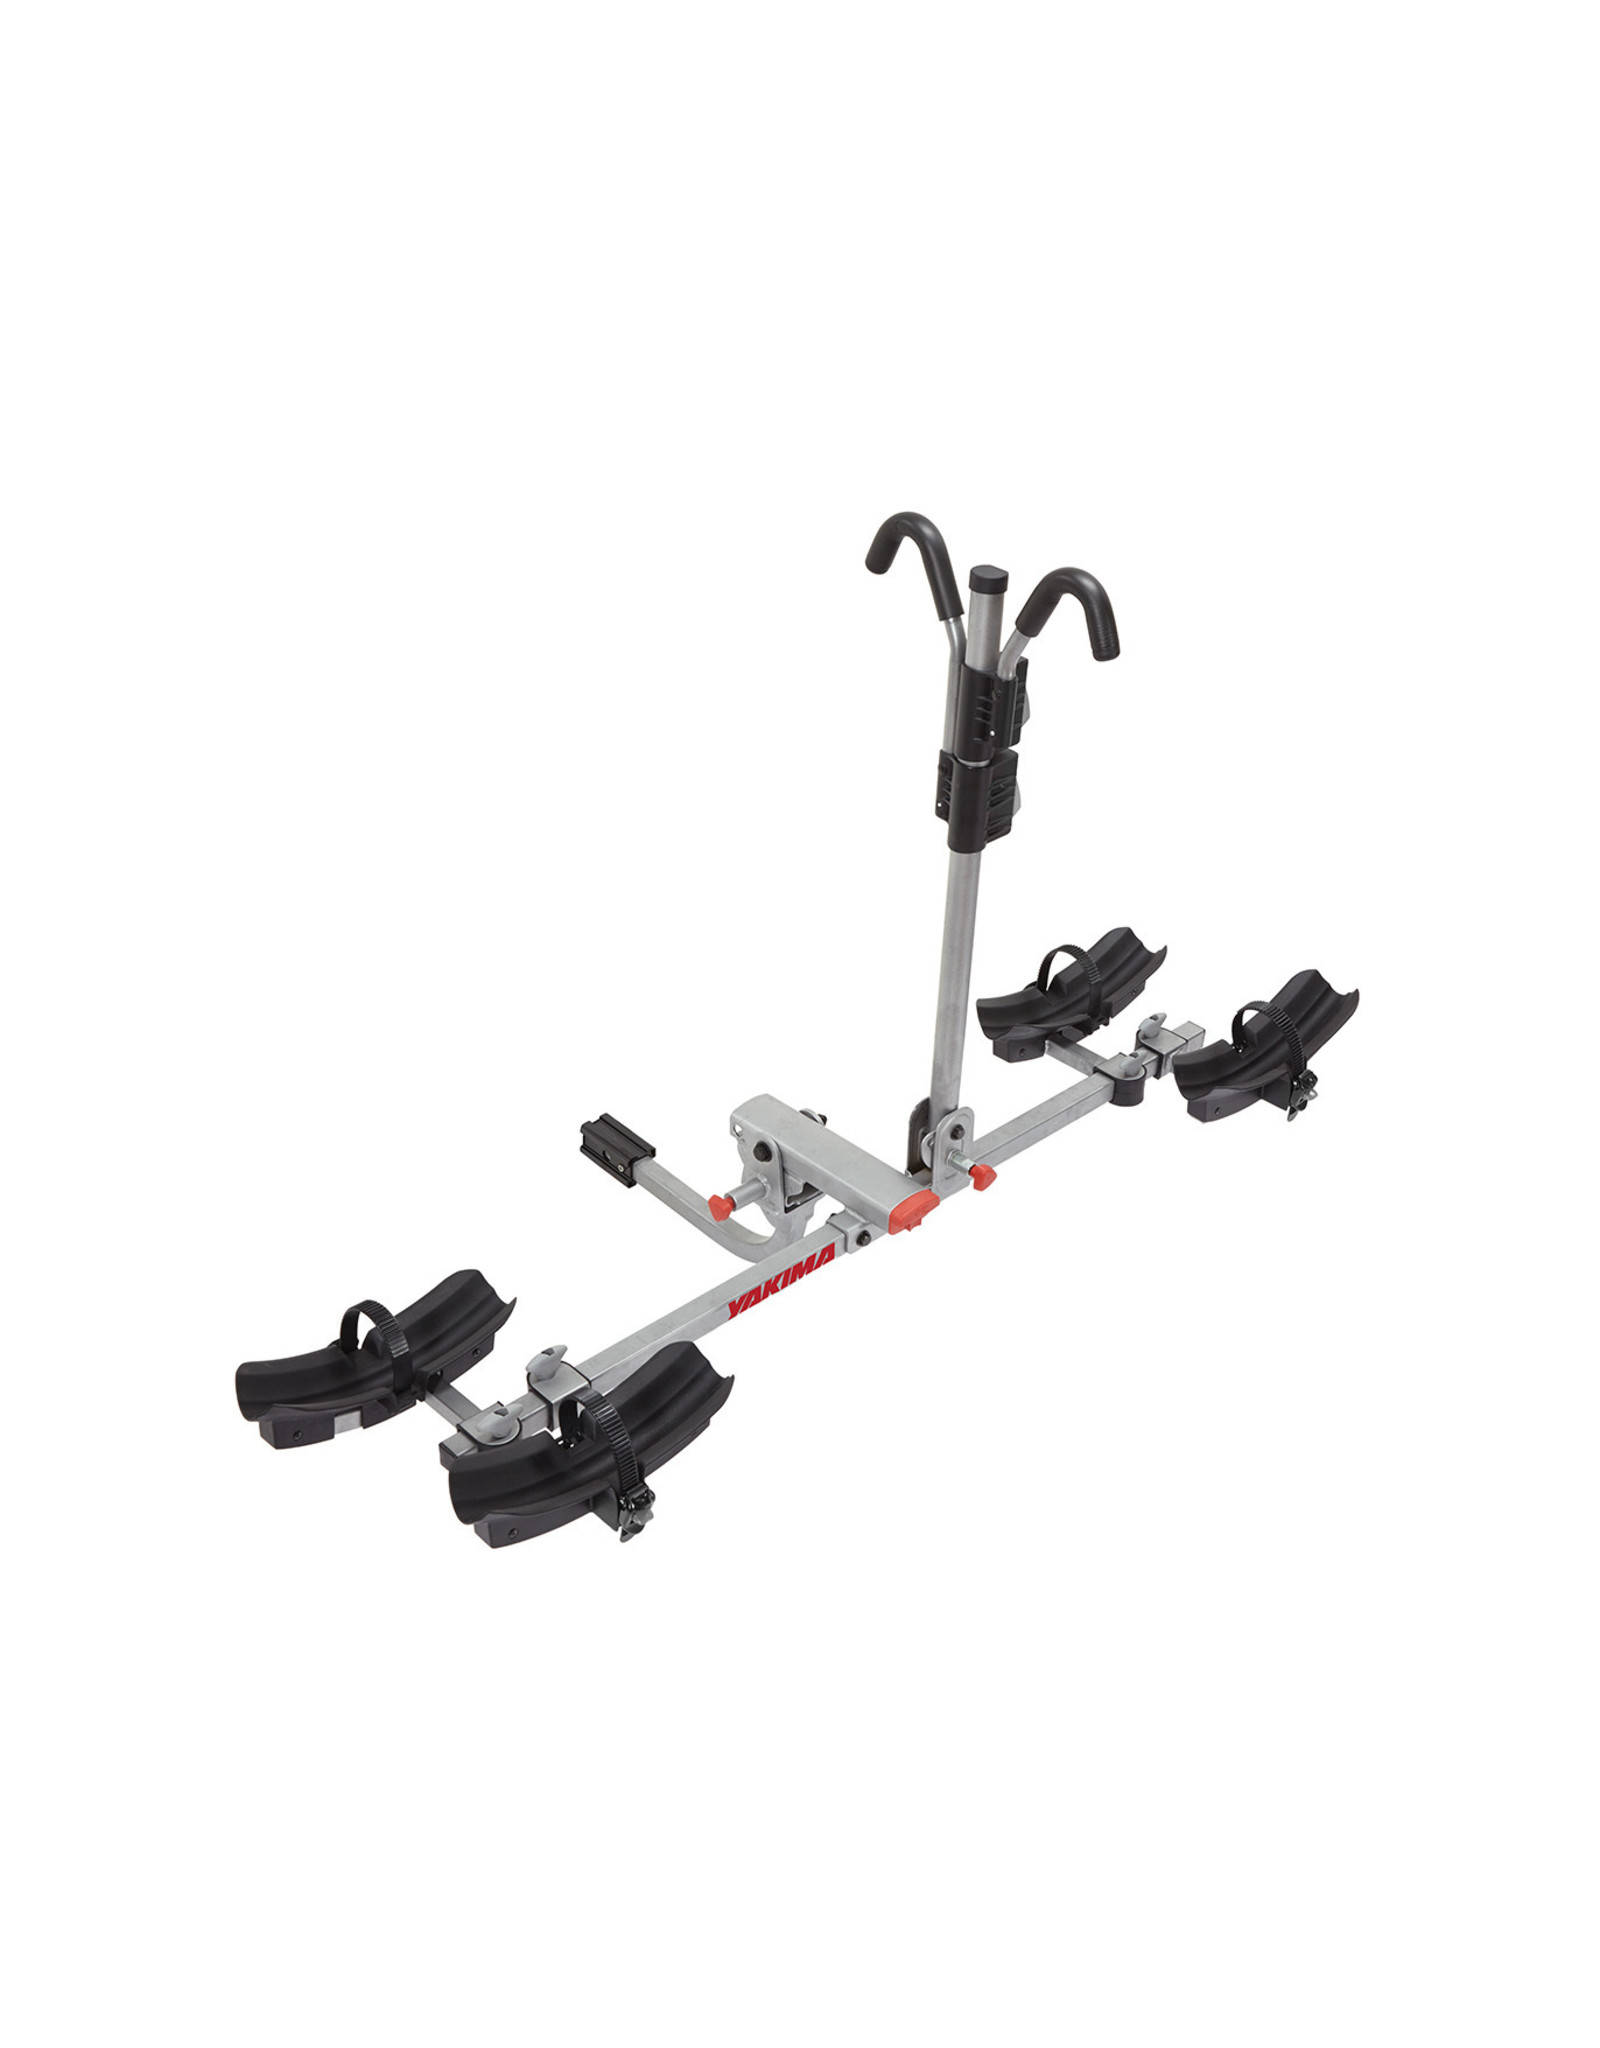 YAKIMA YAKIMA - TwoTimer - Tray Hitch Bike Rack